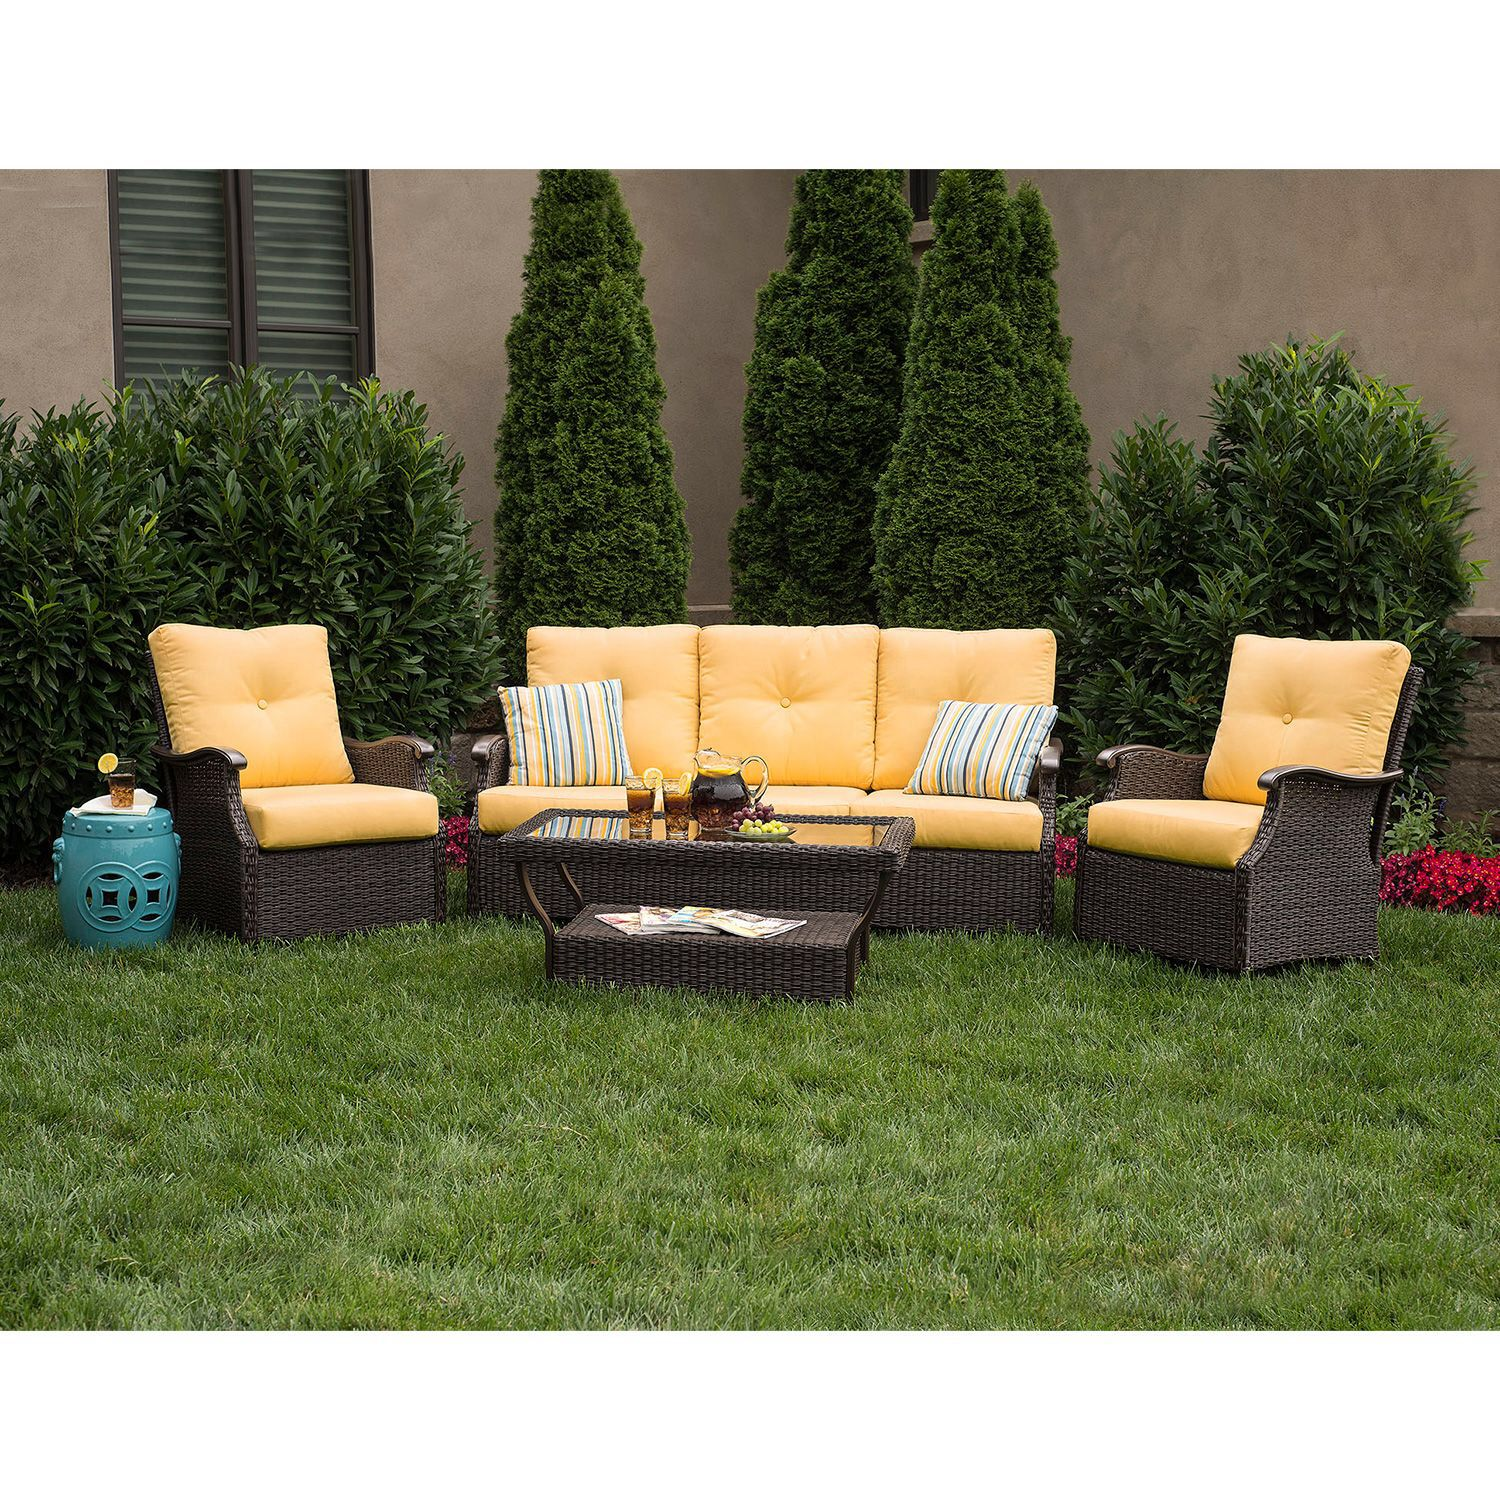 Sam S Wholesale Patio Furniture 12 Best Images About Sams Club Patio Furniture On Sams Club